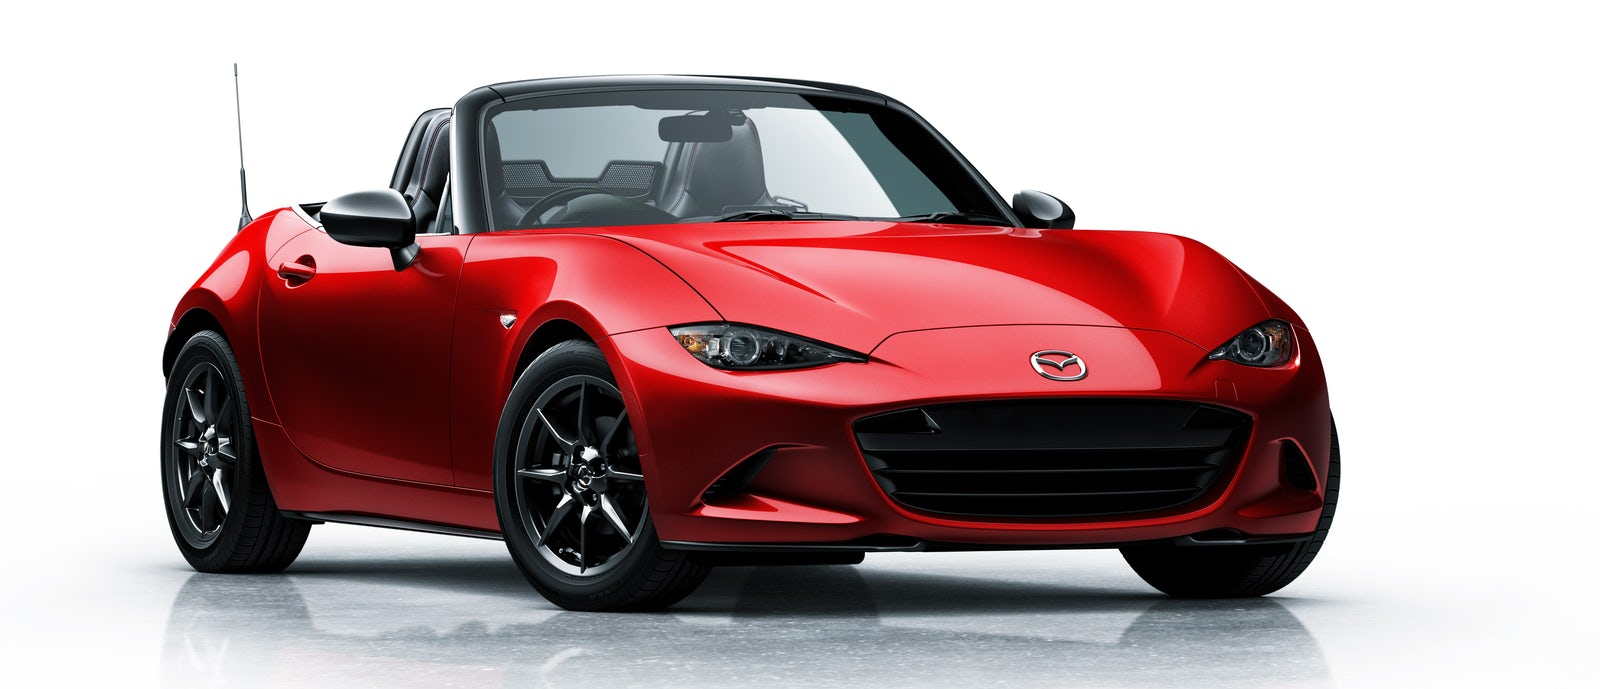 The Best Handling Sports Cars You Can Buy Carwow - Simple sports car